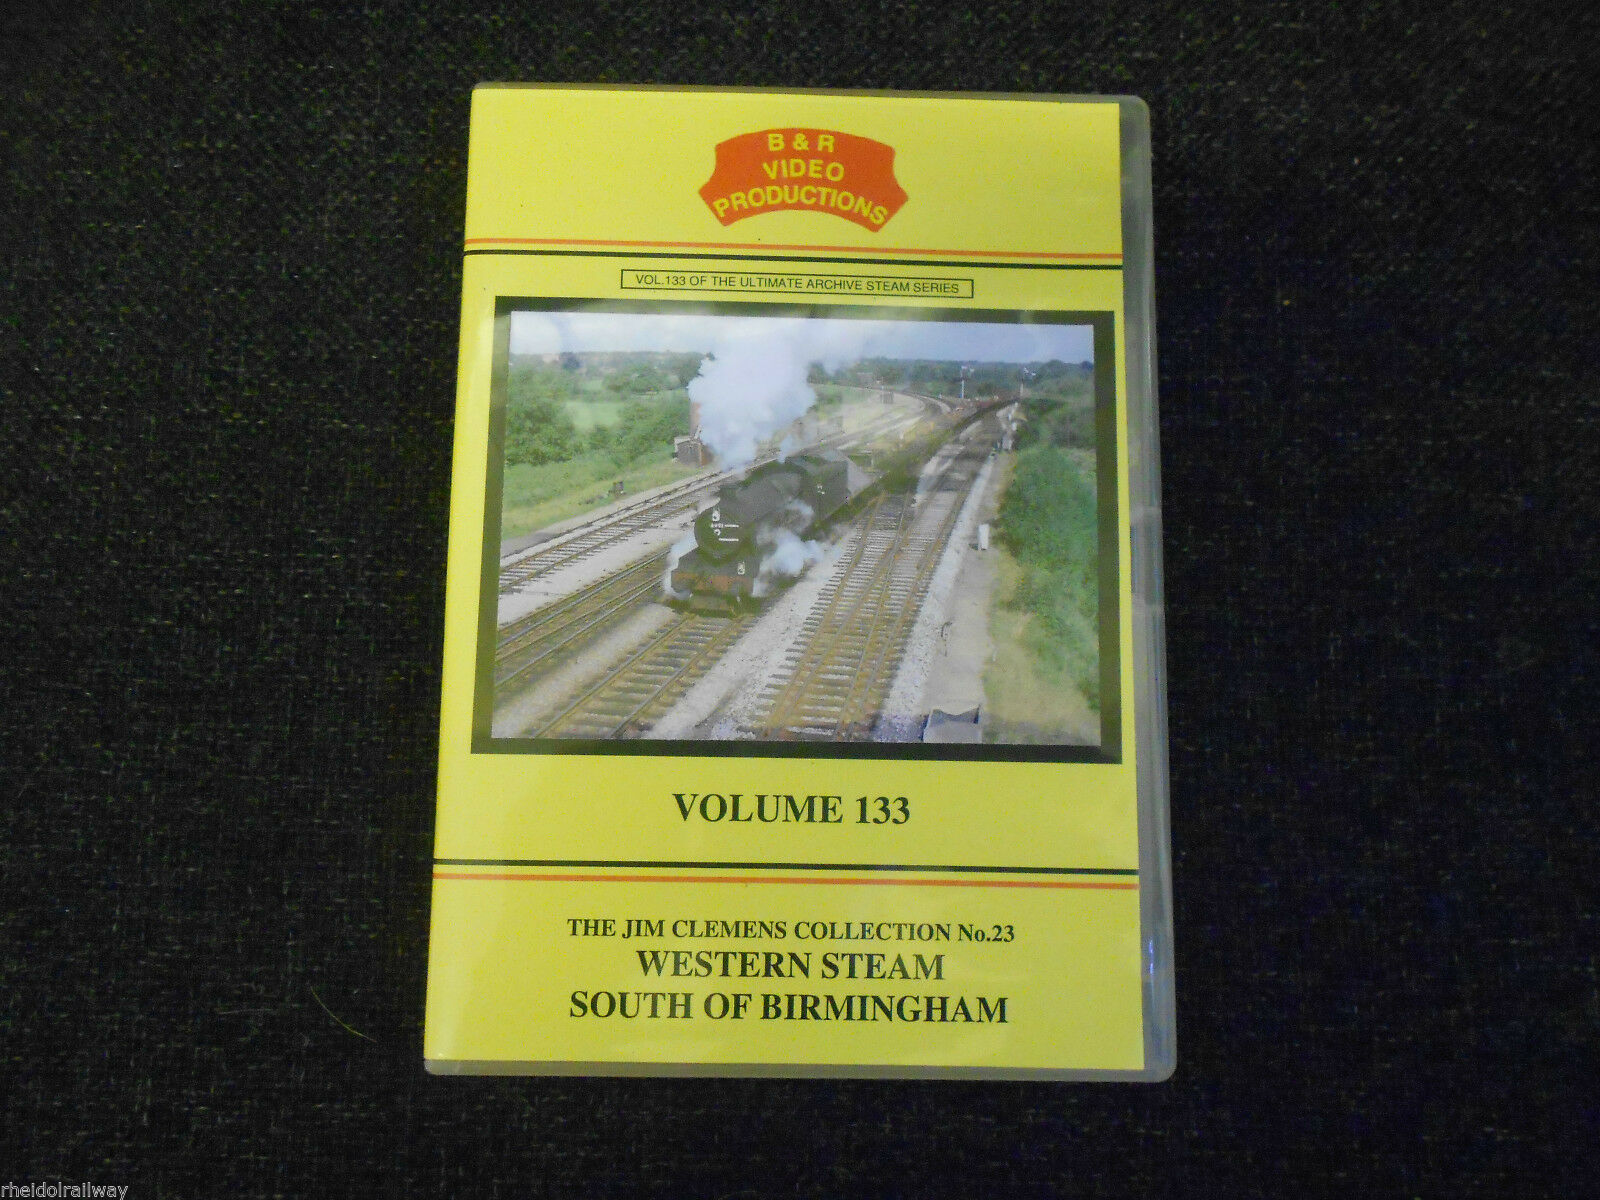 Wolverhampton, Leamington, Western Steam South Of Birmingham B&R Vol 133 DVD